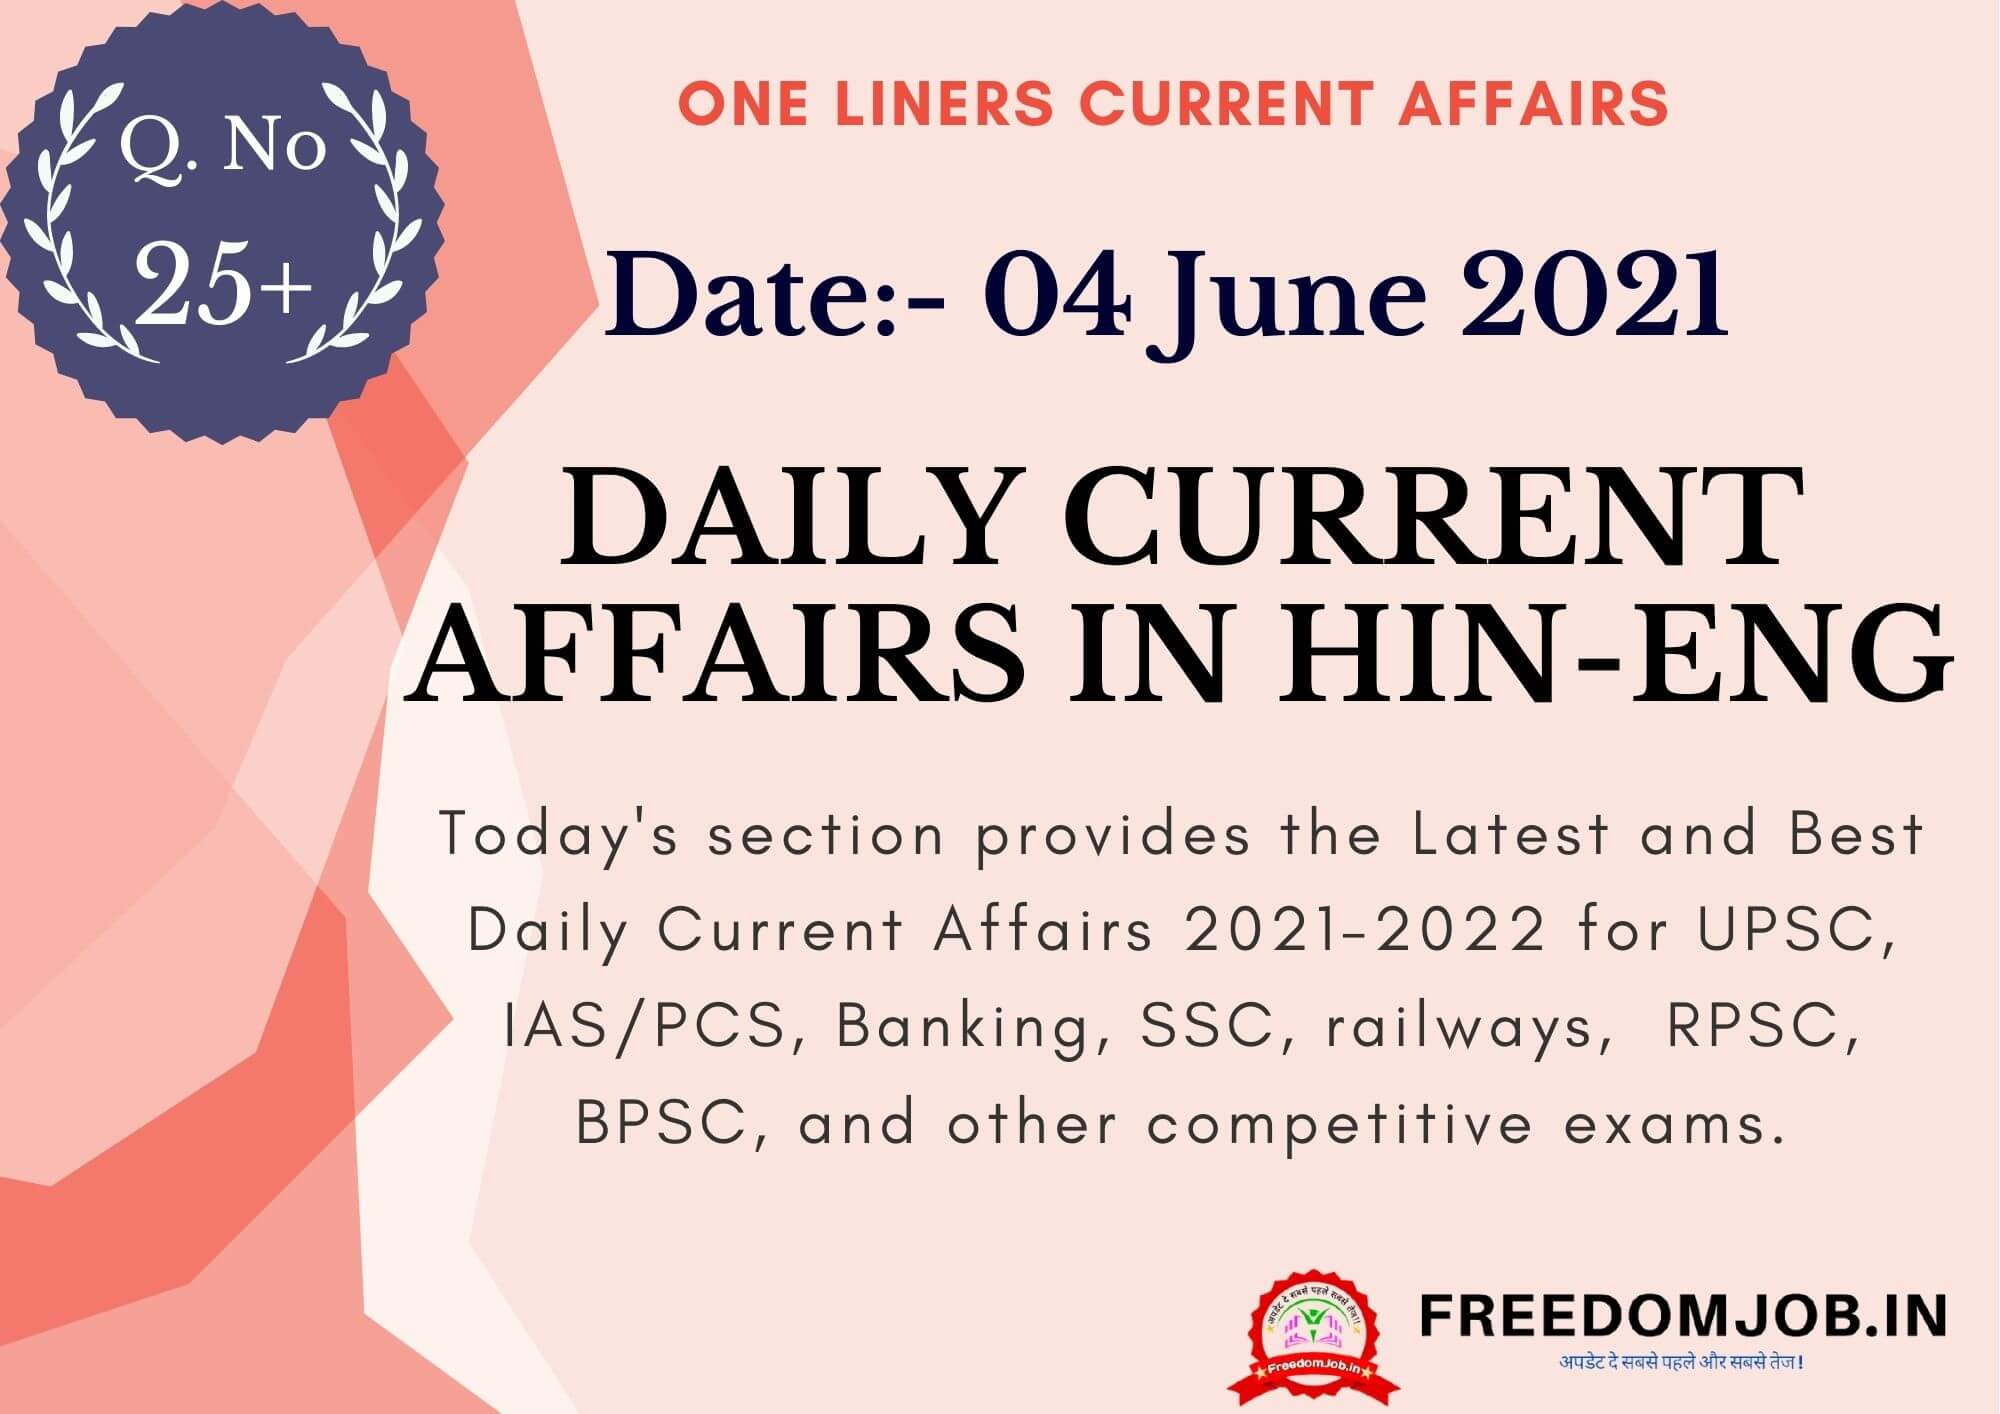 Daily Current Affairs in Hindi English